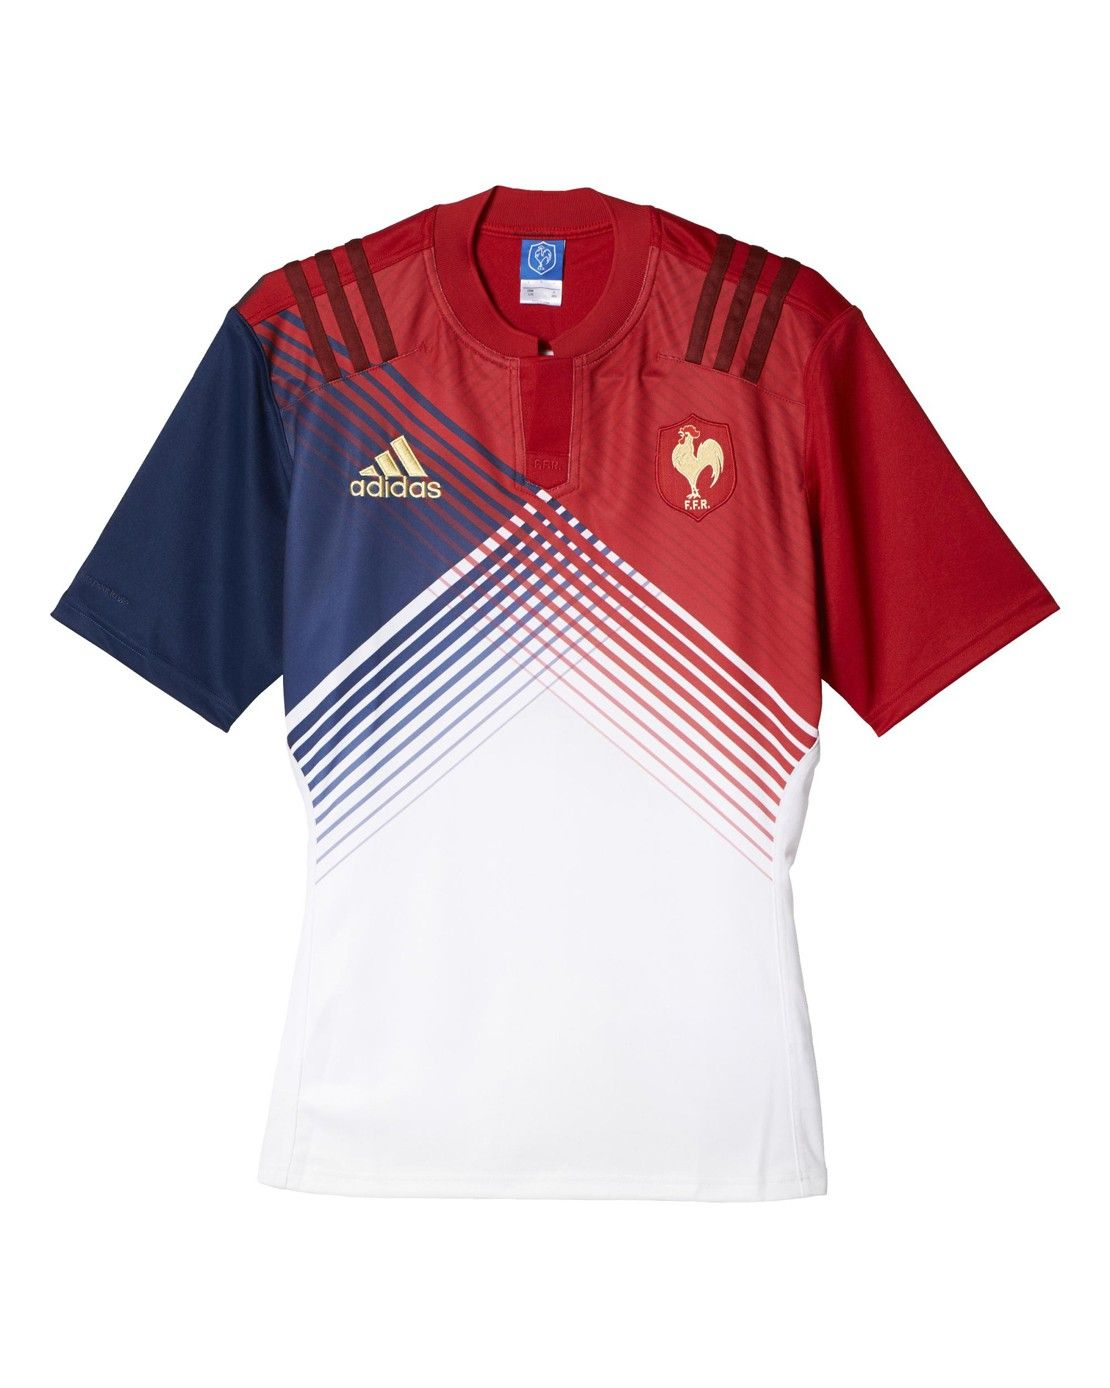 Maillot Rugby France Extérieur | Maillot rugby france